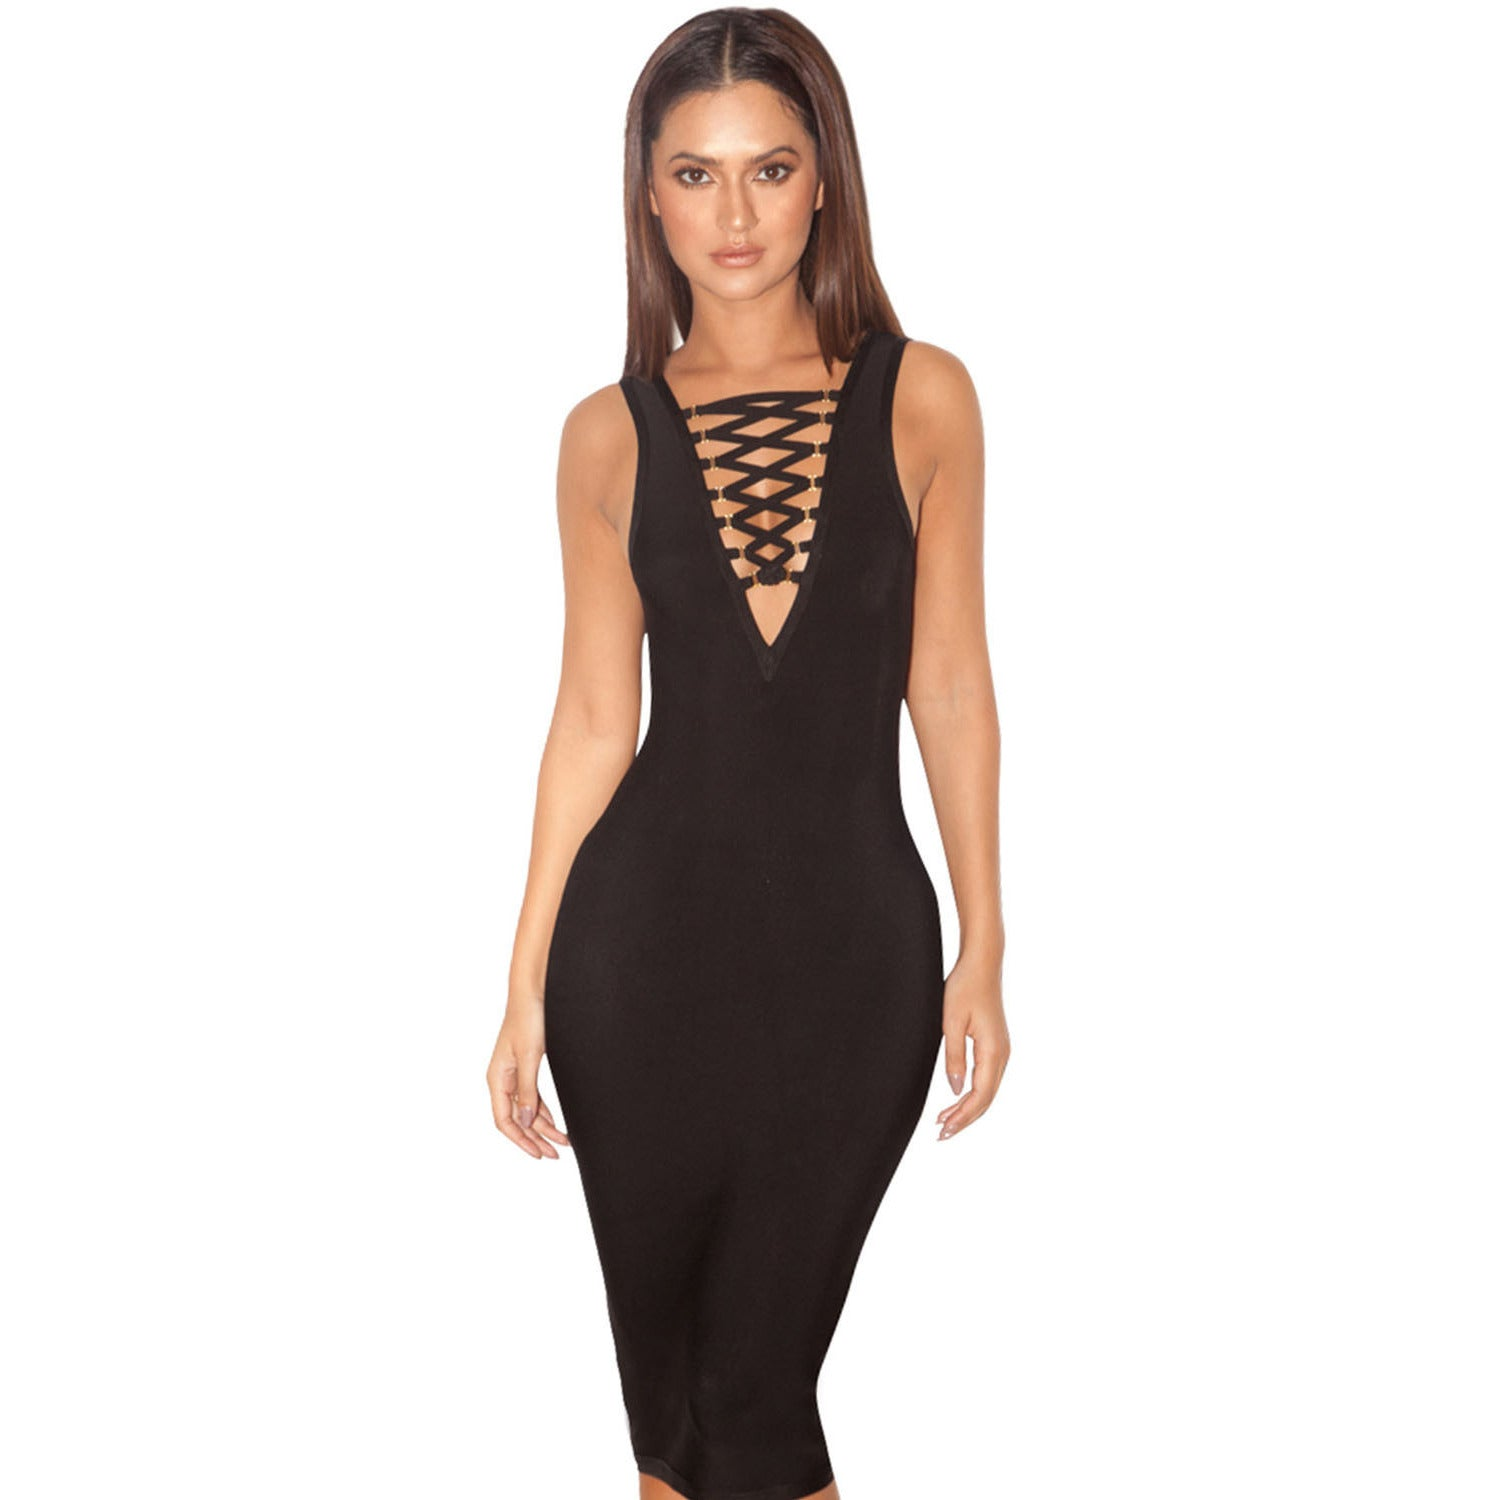 Sexy Deep V Neck Lace Up Bandage Dress LAVELIQ SALE - LAVELIQ - 1